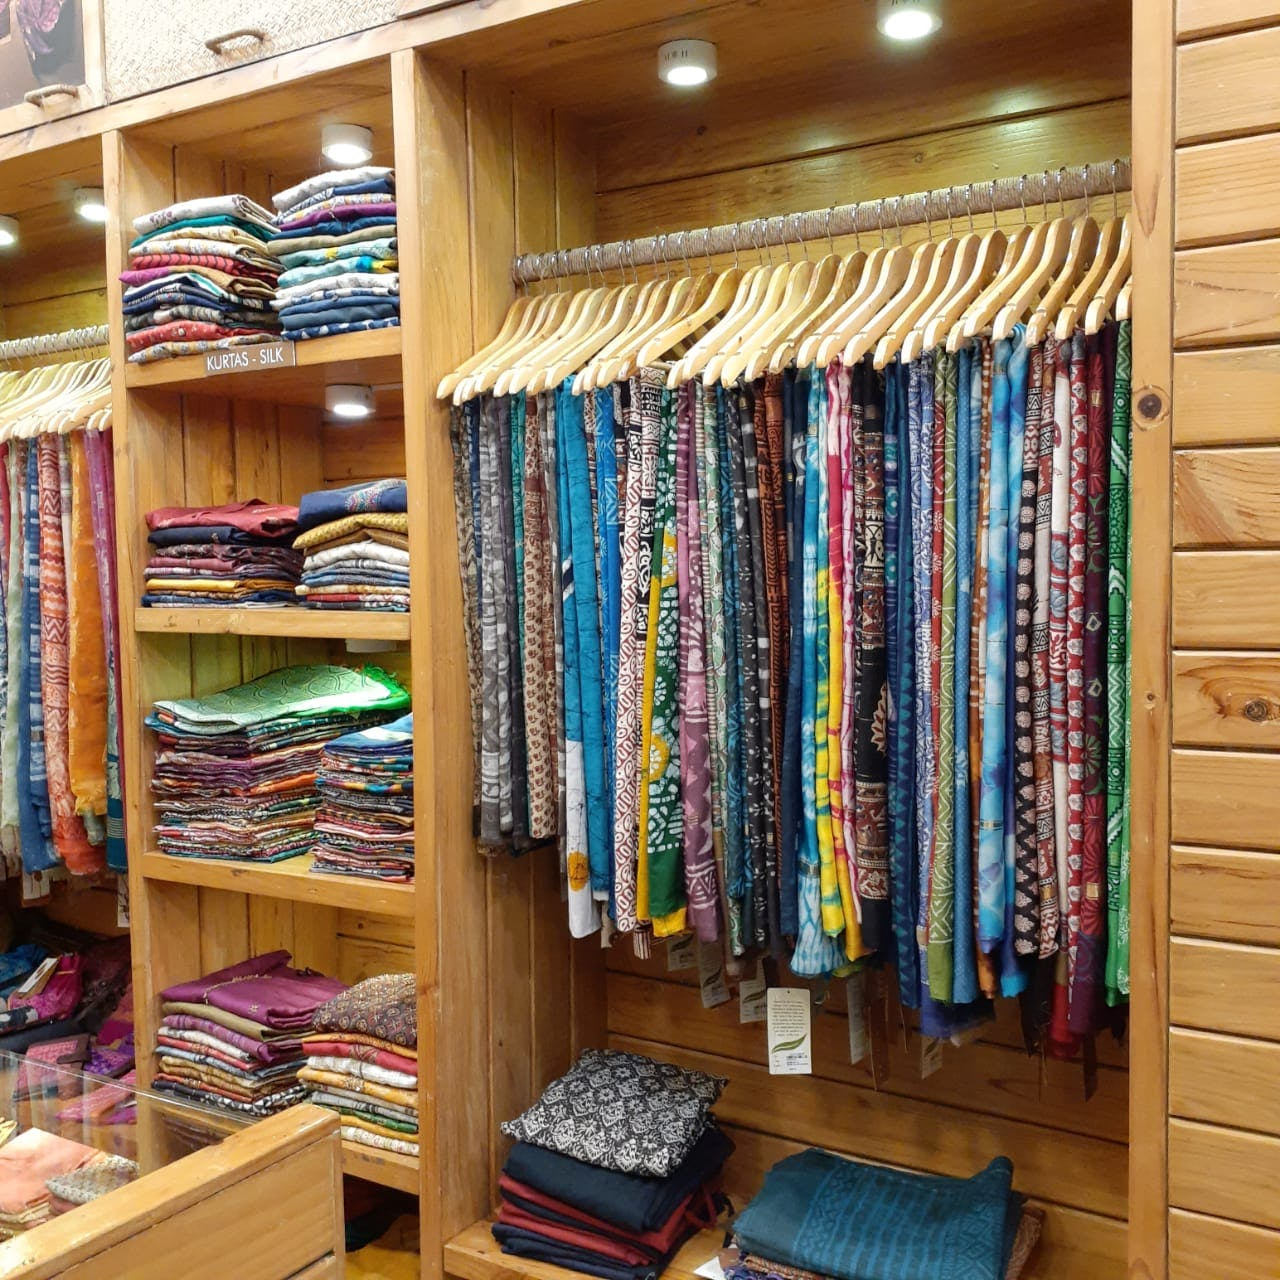 From Earthwear To Fabindia, Avani Mall Boasts Of Amazing Stores For Women To Shop From